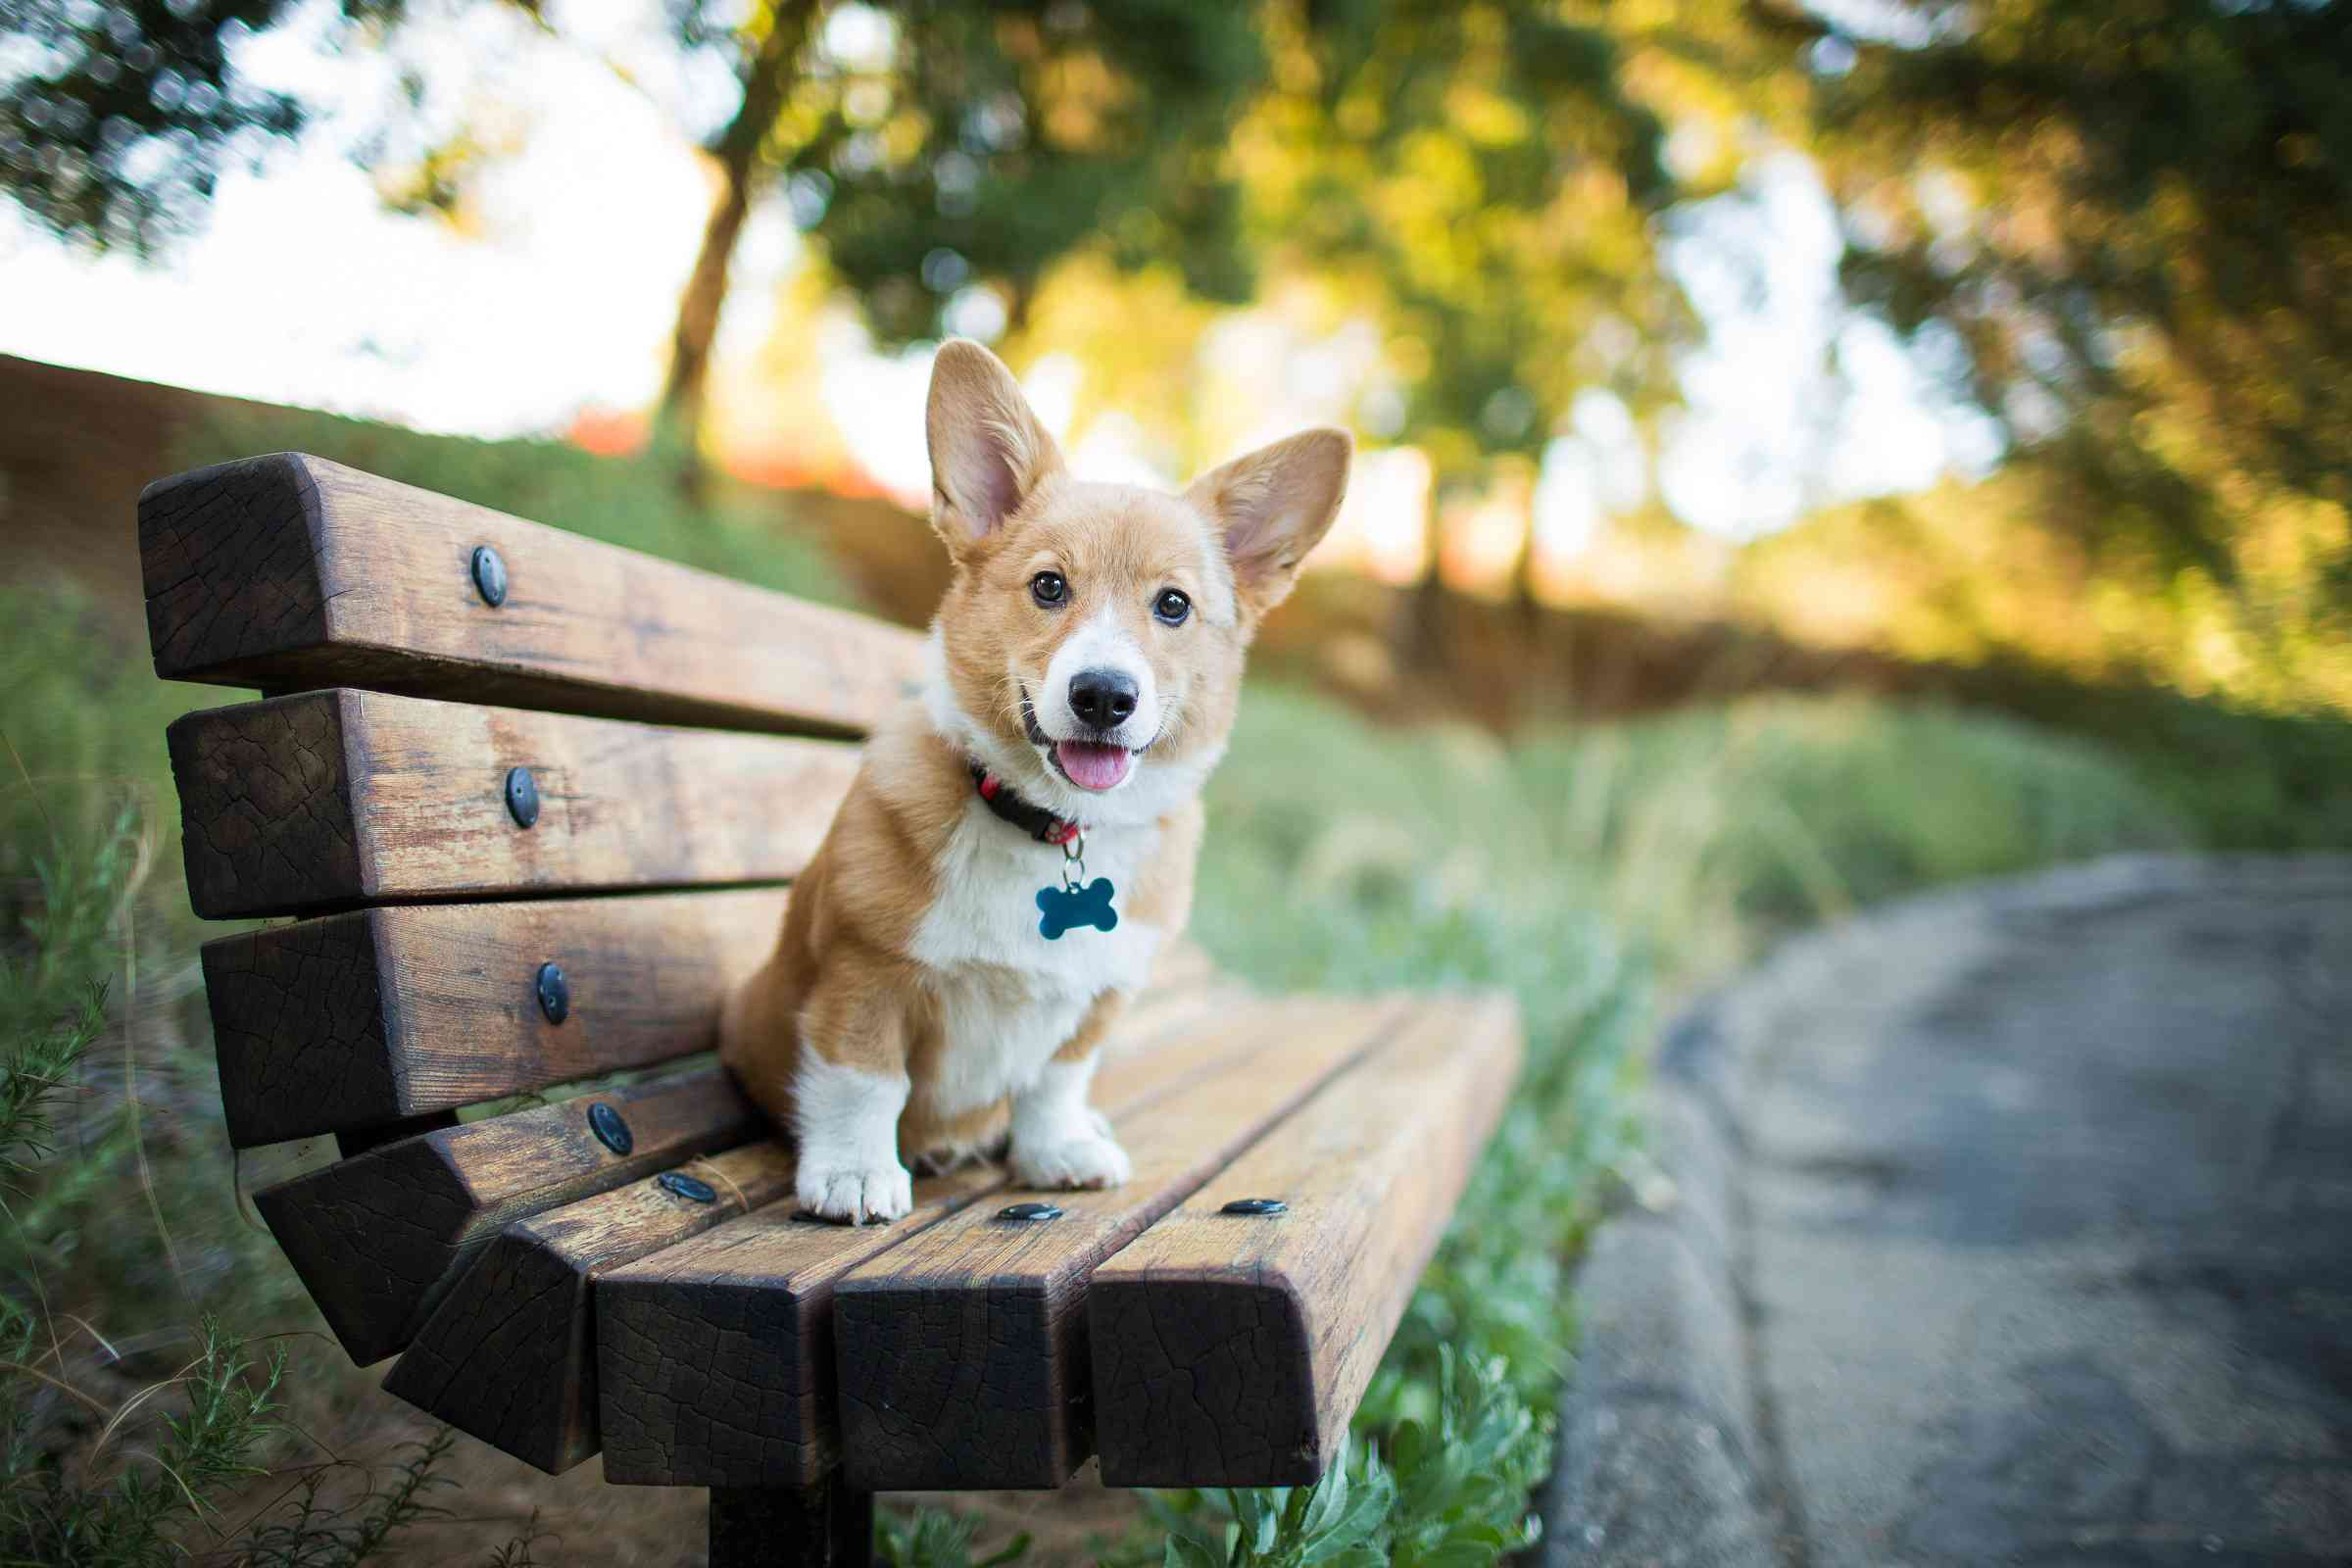 corgi sitting and smiling on a bench